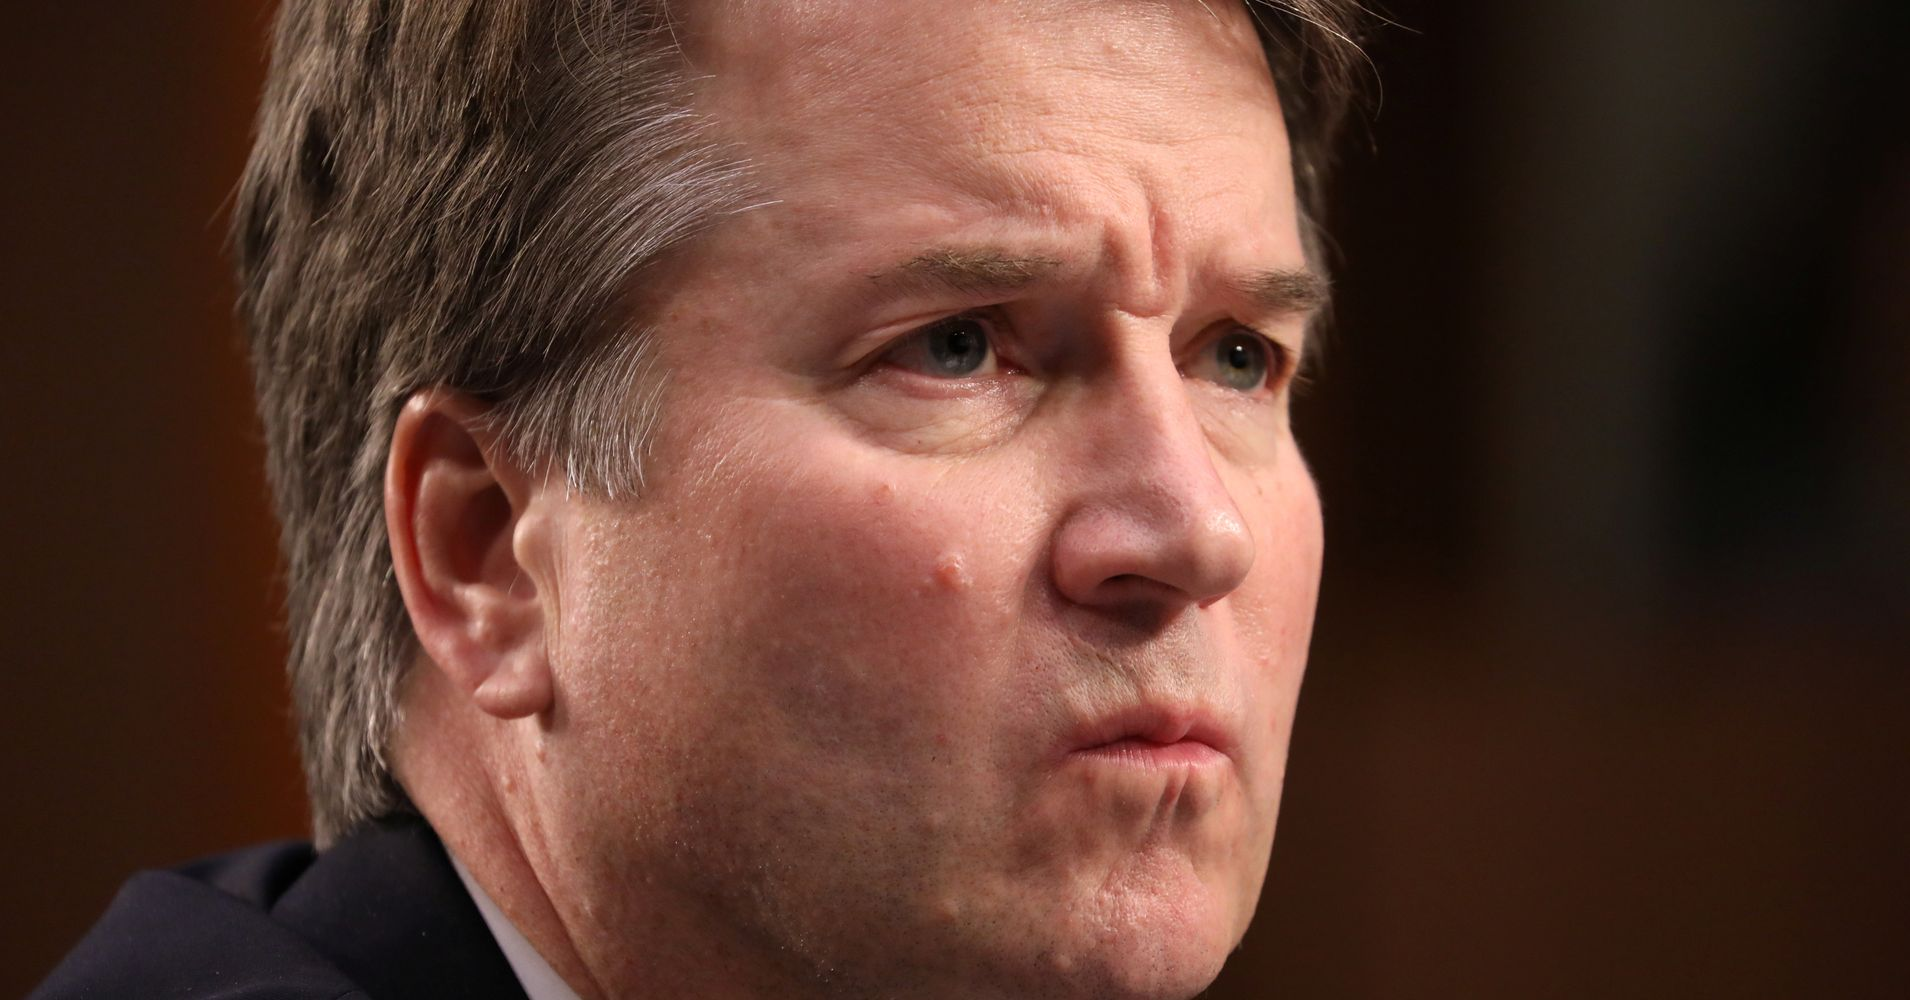 Kavanaugh Was 'Aggressive And Belligerent' When Drunk, His Yale Roommate Says | HuffPost